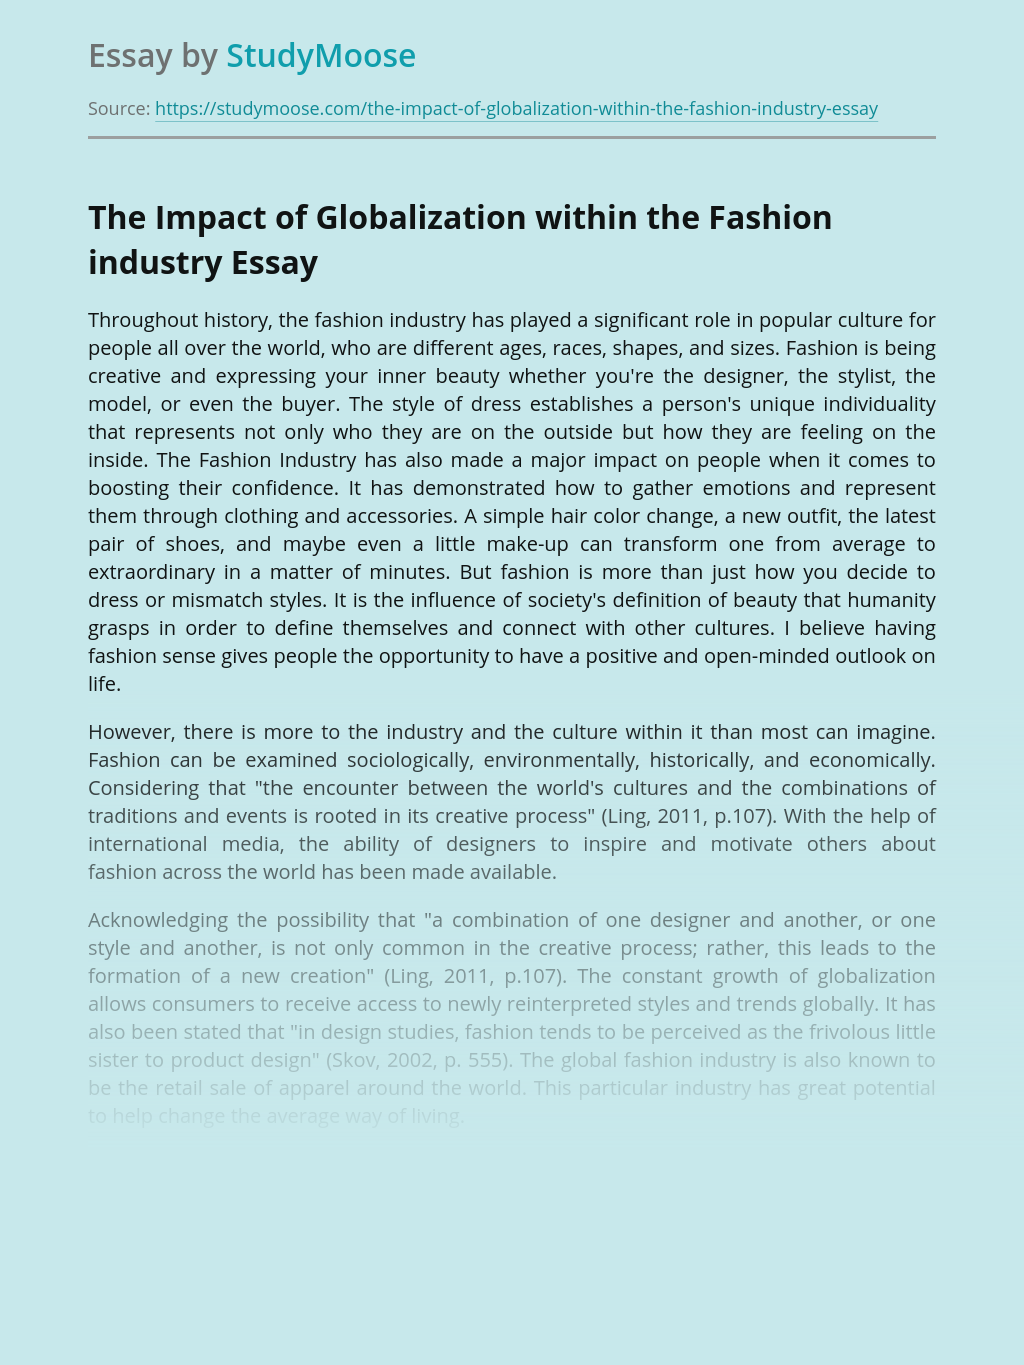 The Impact of Globalization within the Fashion industry